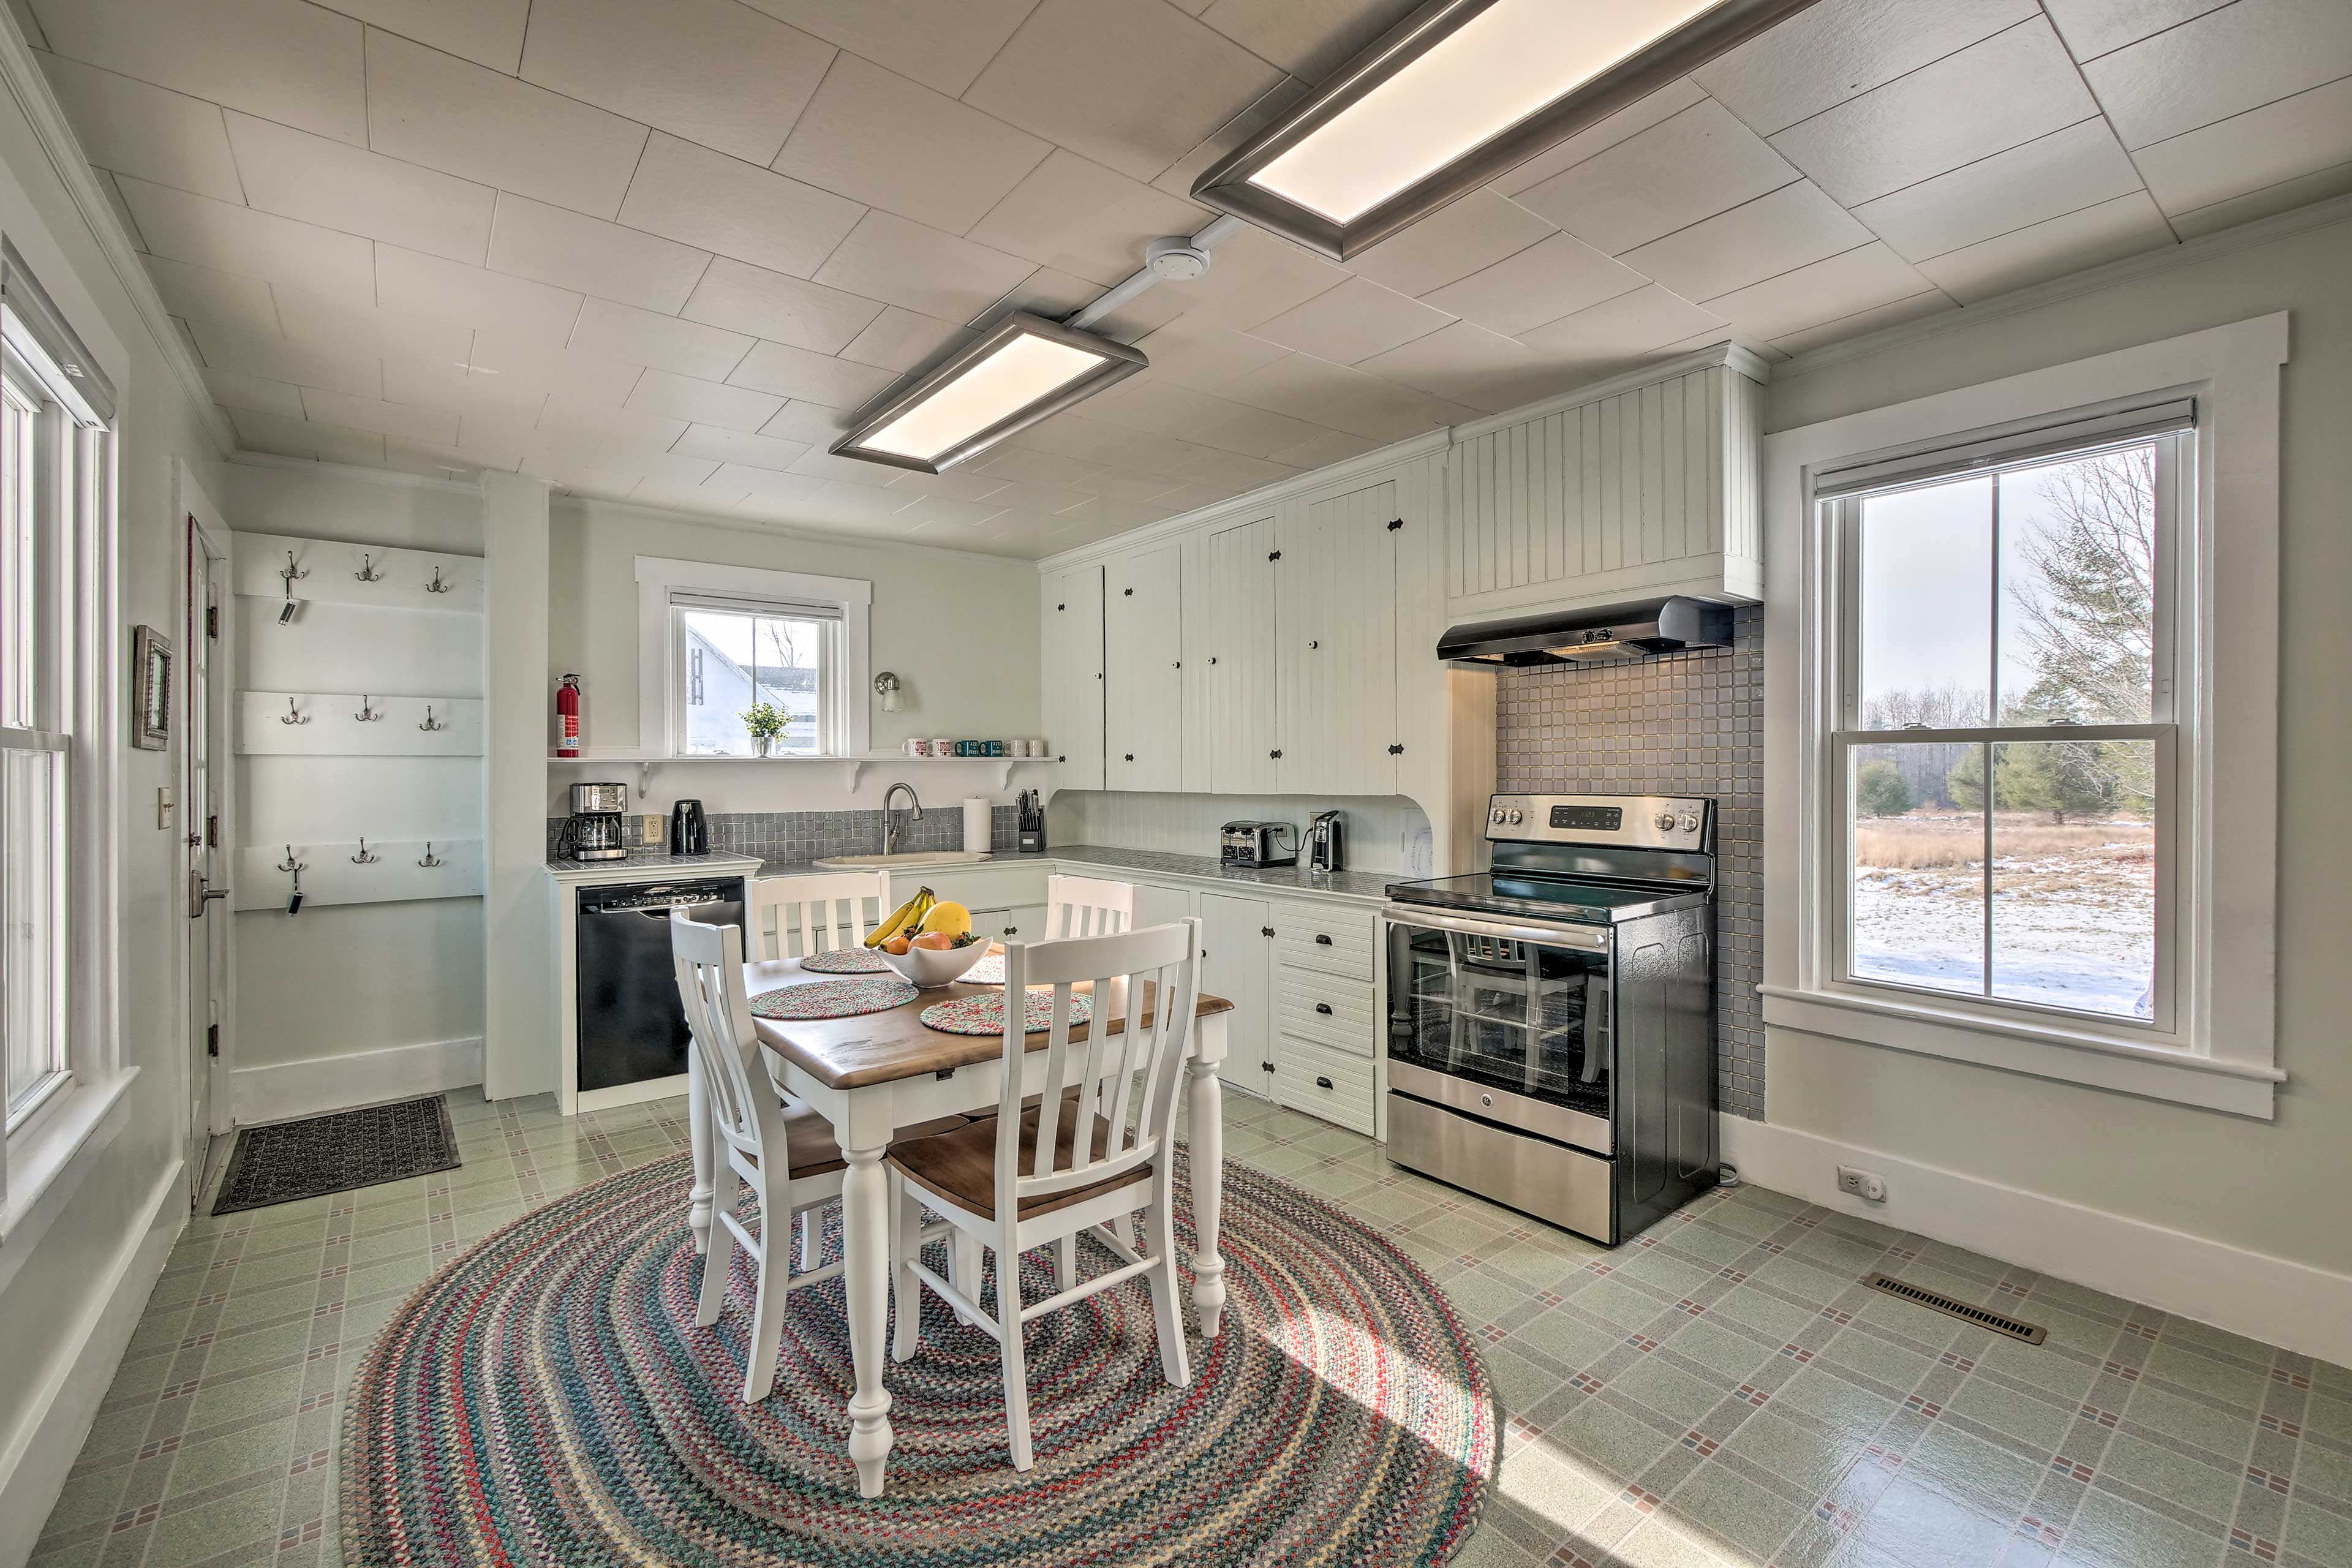 This vacation rental was recently renovated!